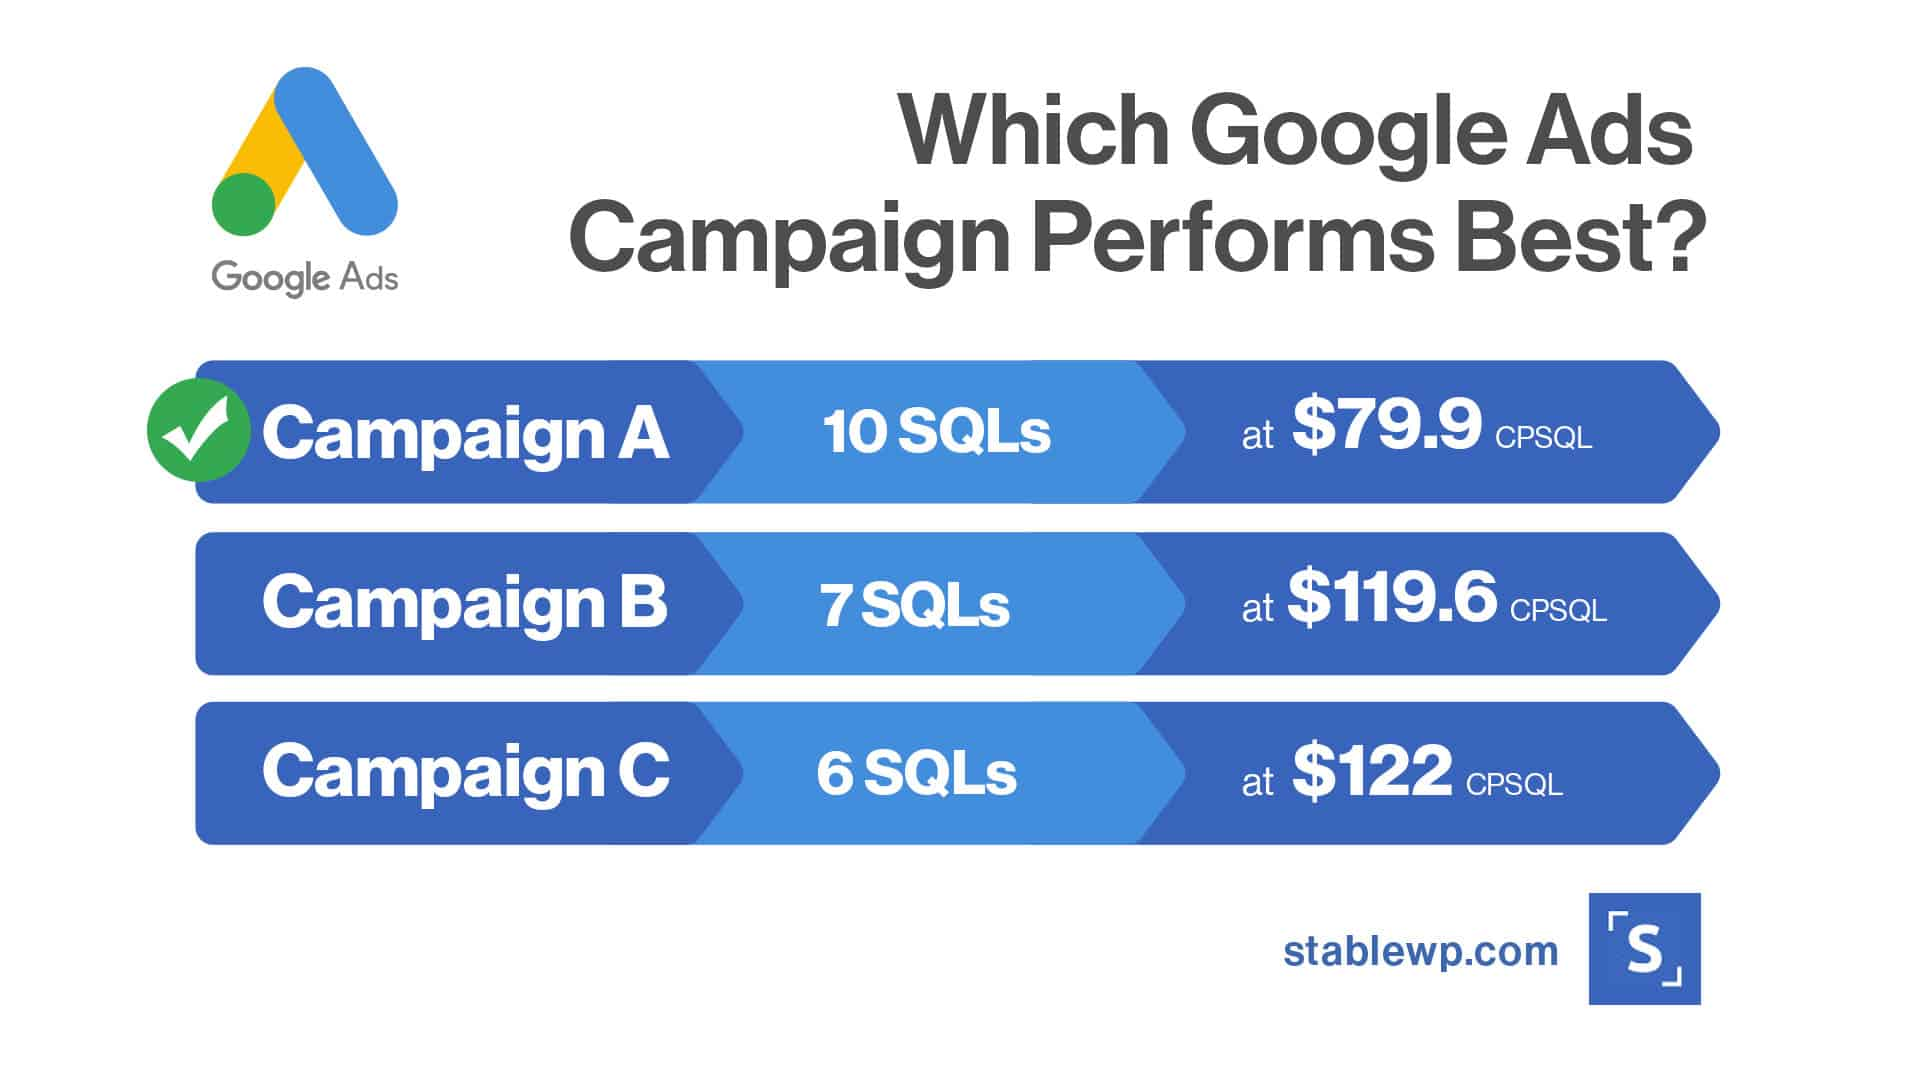 which Google Ads campaign performs best based on SQLs and the Cost per SQL